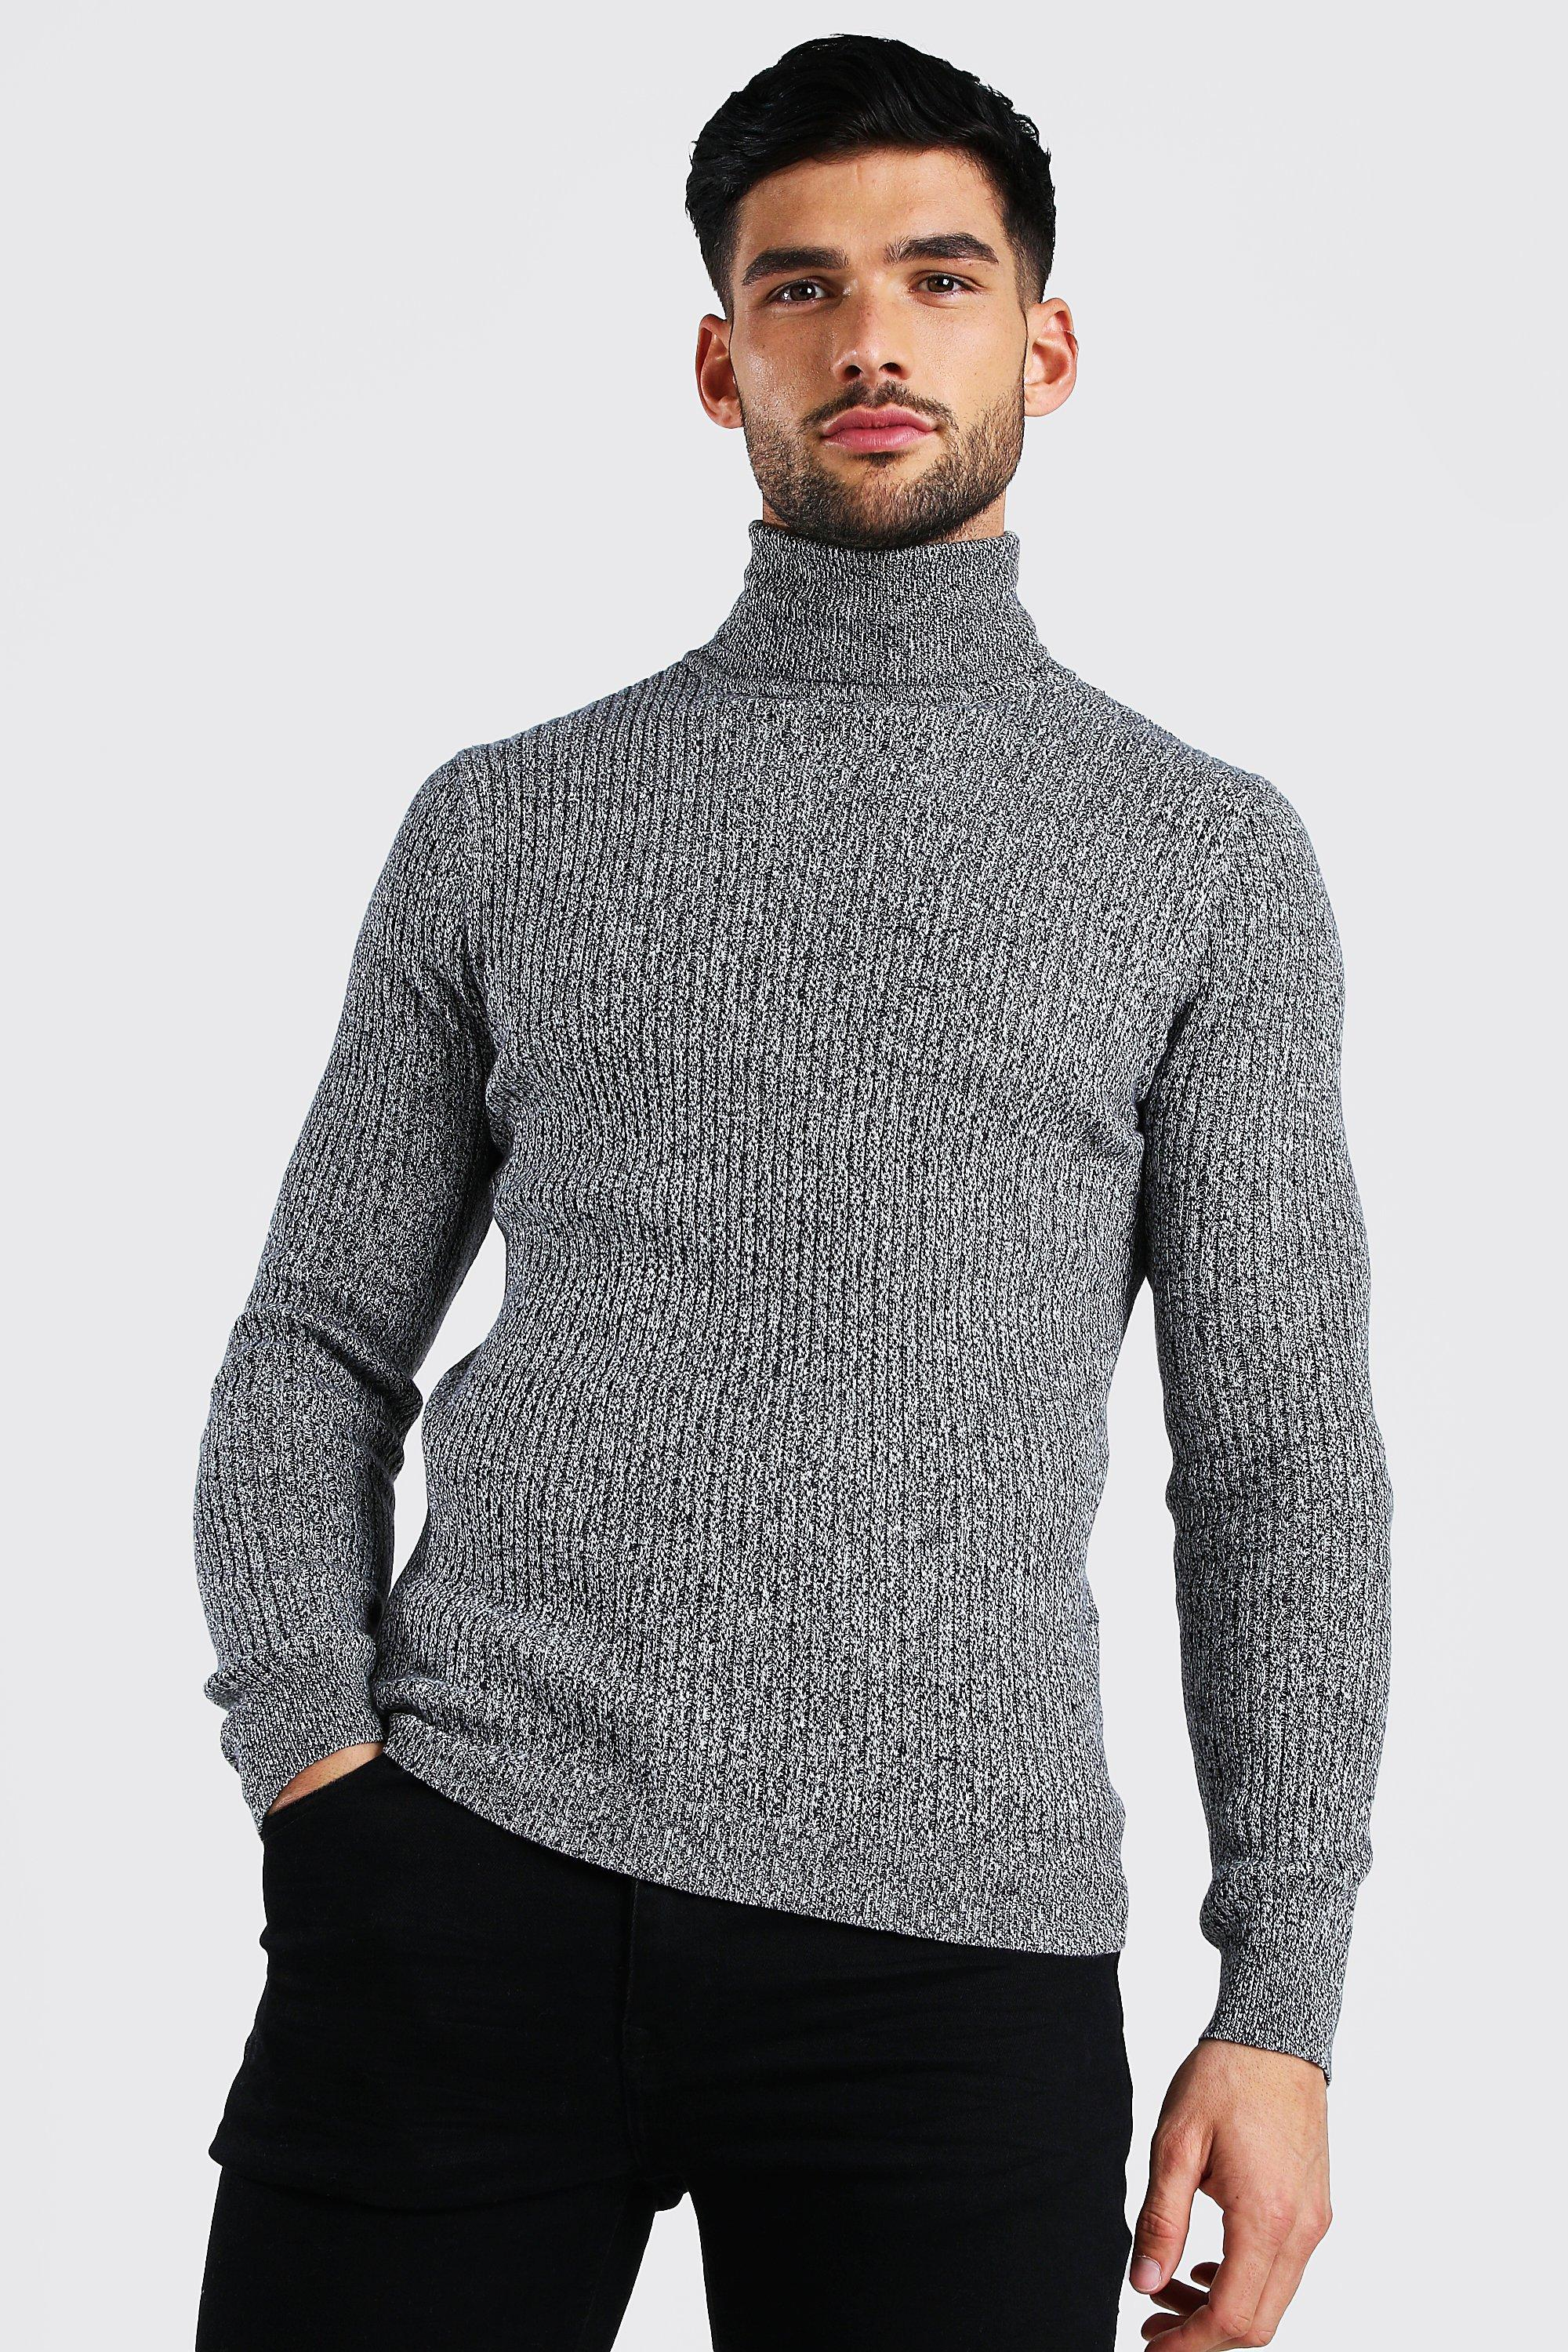 1940s UK and Europe Men's Clothing – WW2, Swing Dance, Goodwin Mens Regular Fit Ribbed Roll Neck Sweater - Grey $18.00 AT vintagedancer.com